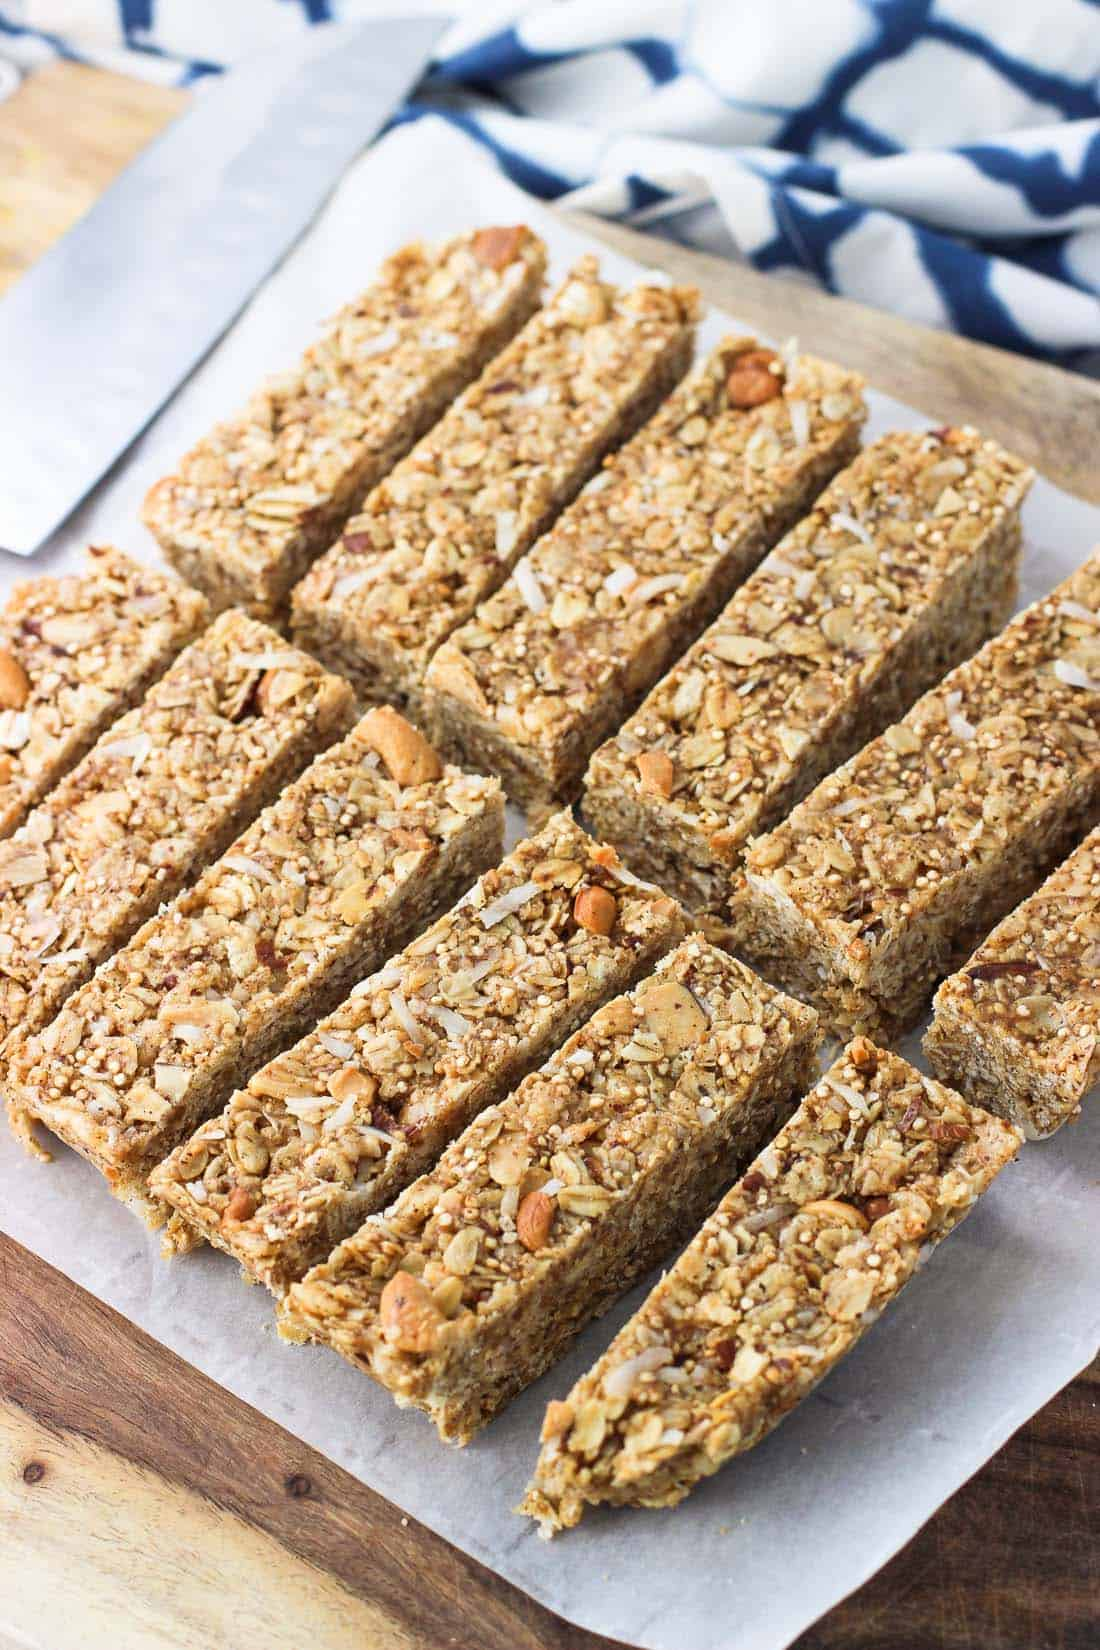 Twelve granola bars just after being sliced on the cutting board